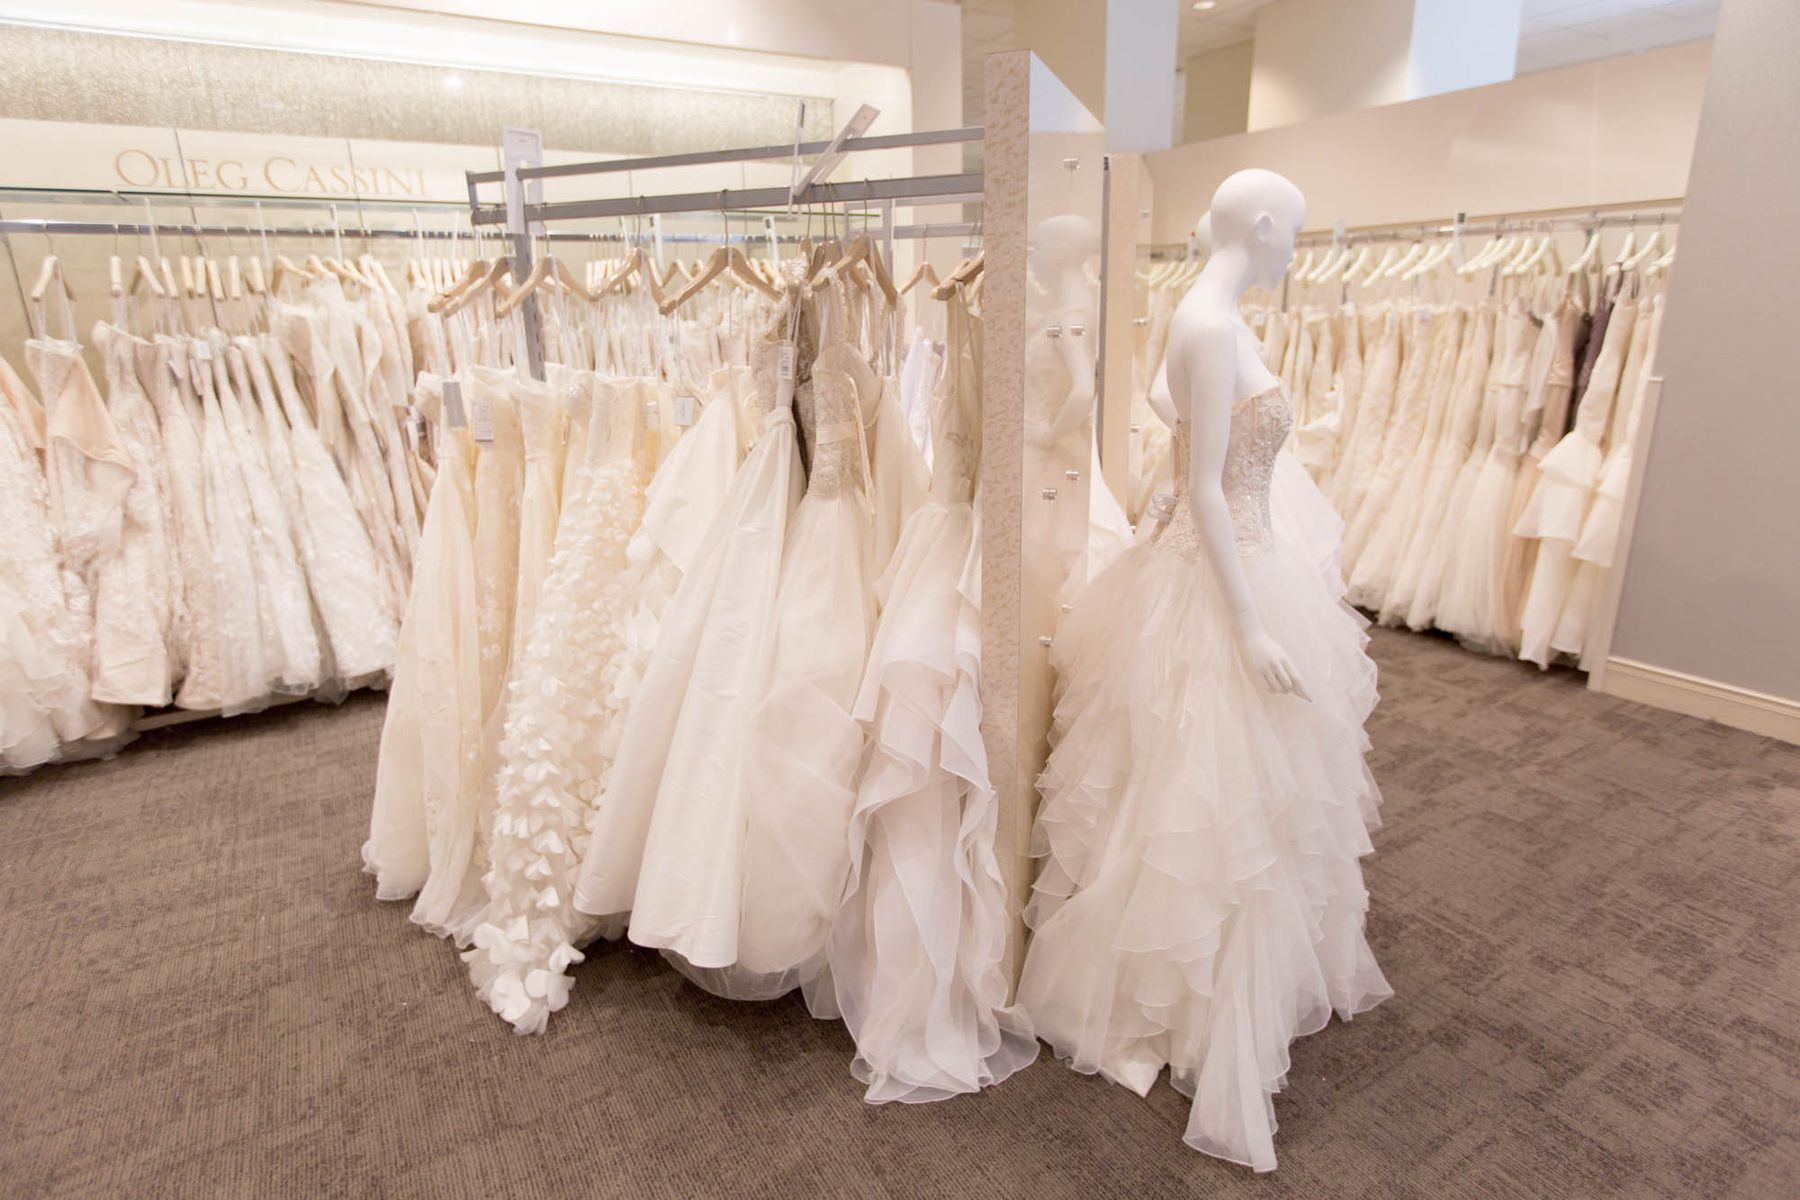 David bridal wedding dress  Davidus Bridal Doesnut Want to Be the Walmart of Weddings Anymore